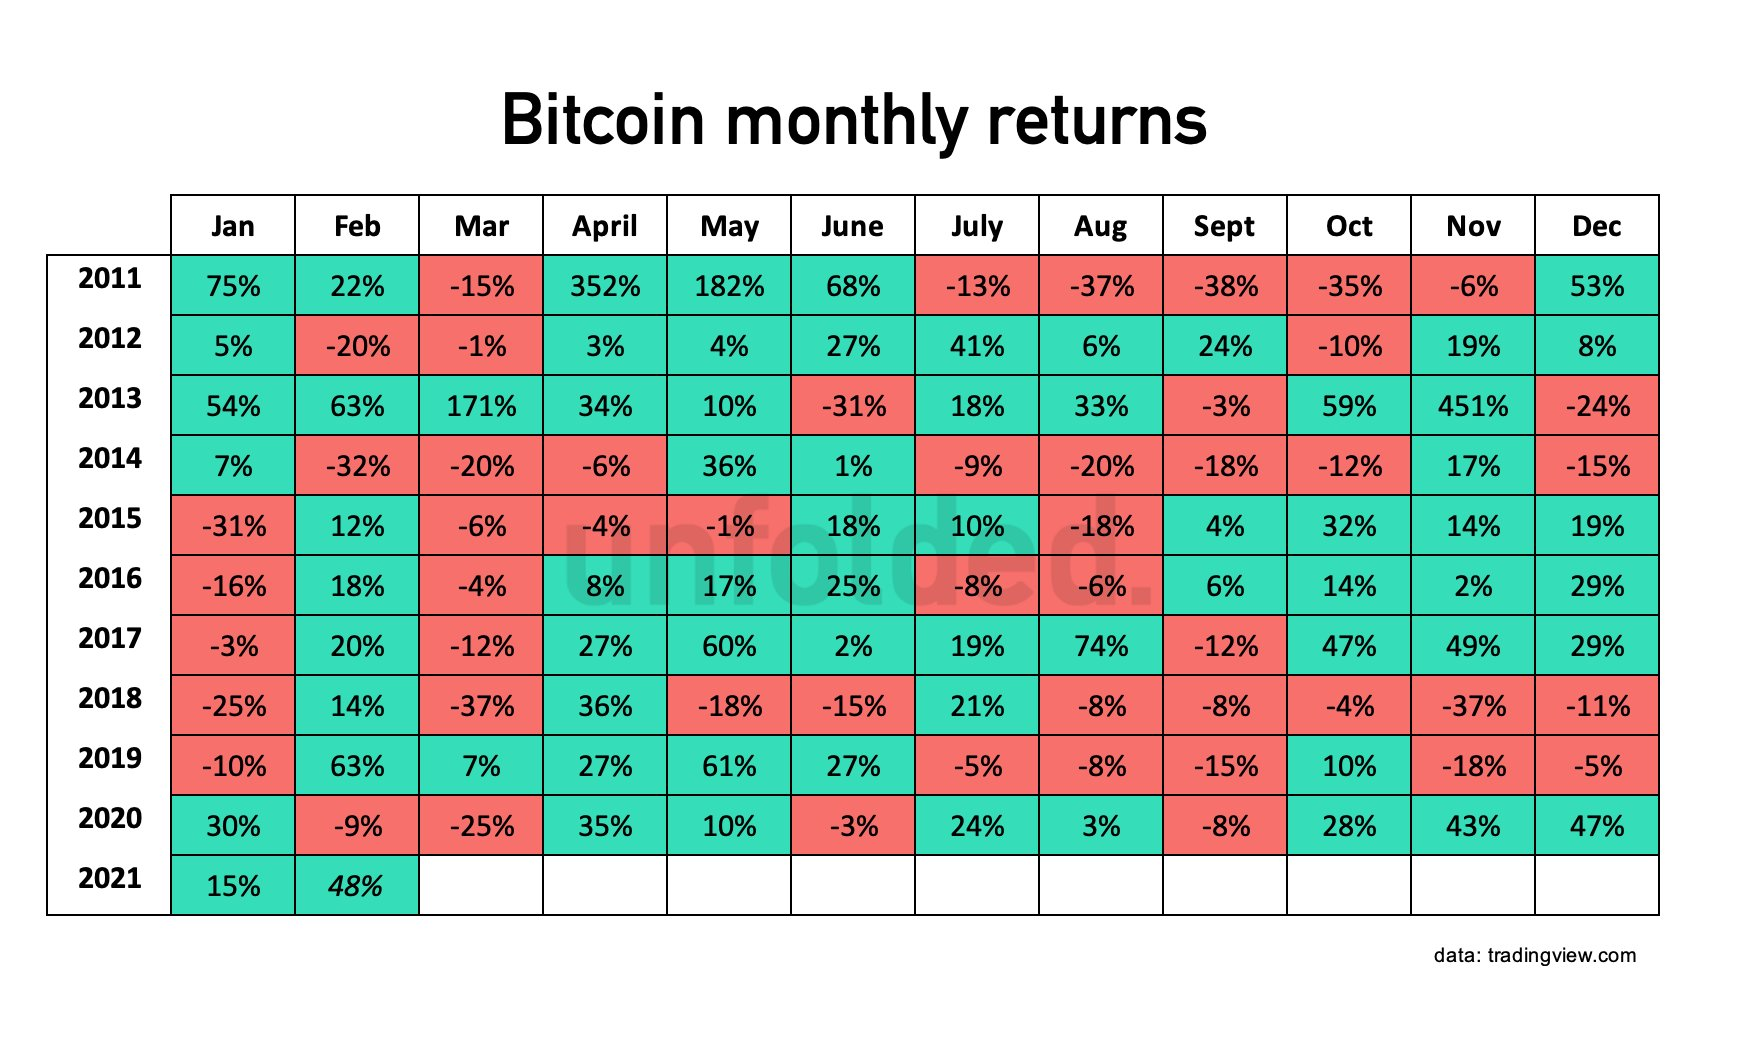 Why Bitcoin's price won't dip in March 2021